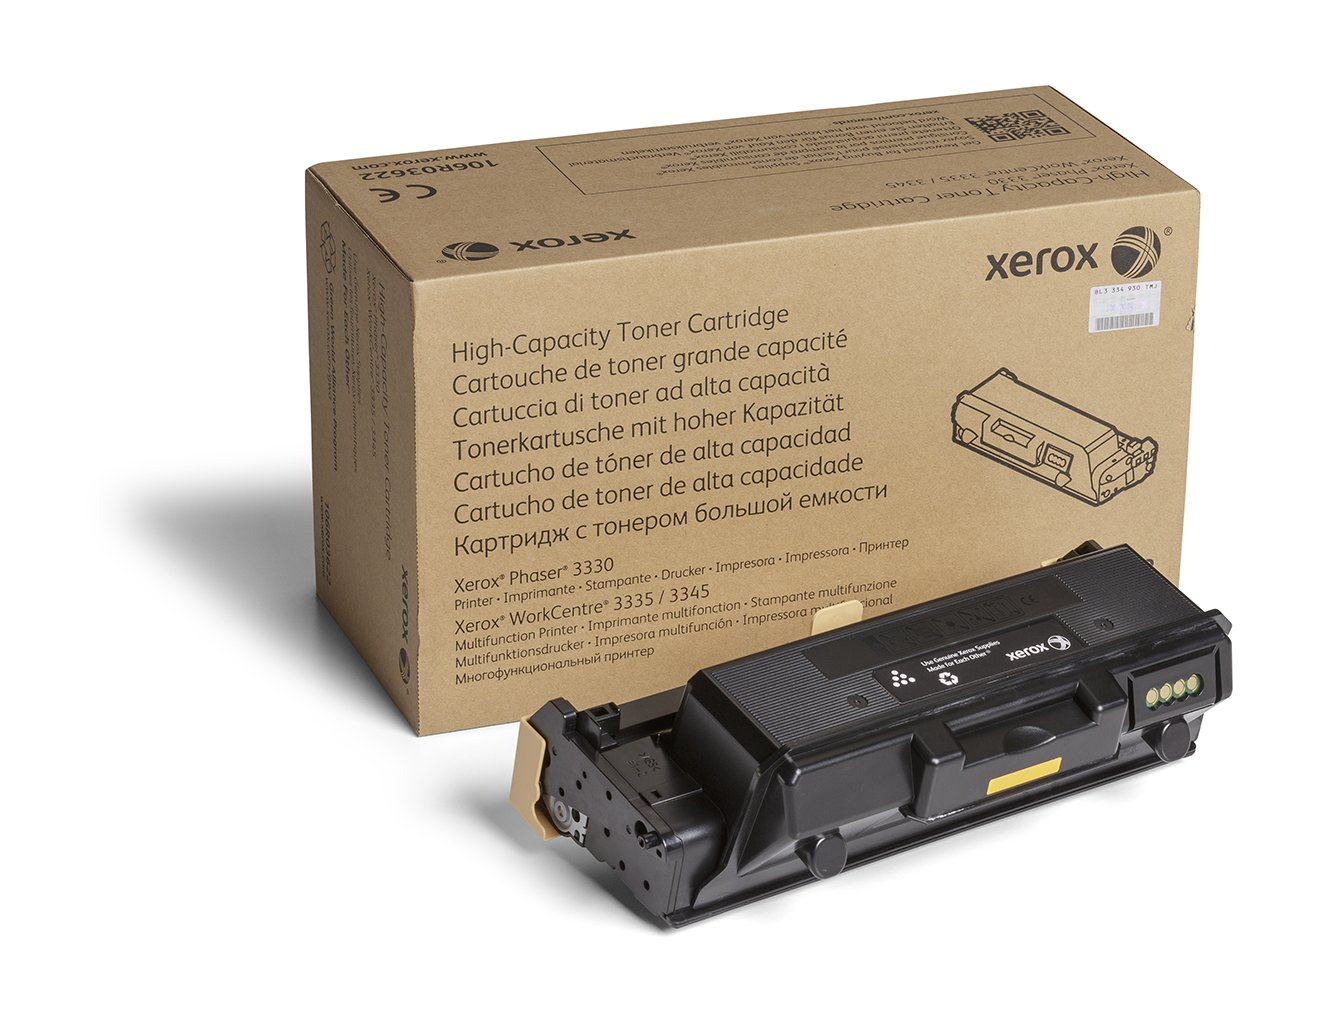 Xerox Phaser 3330/Workcentre 3335/3345 Black High Capacity Toner Cartridge (8,500 Pages) - 106R03622